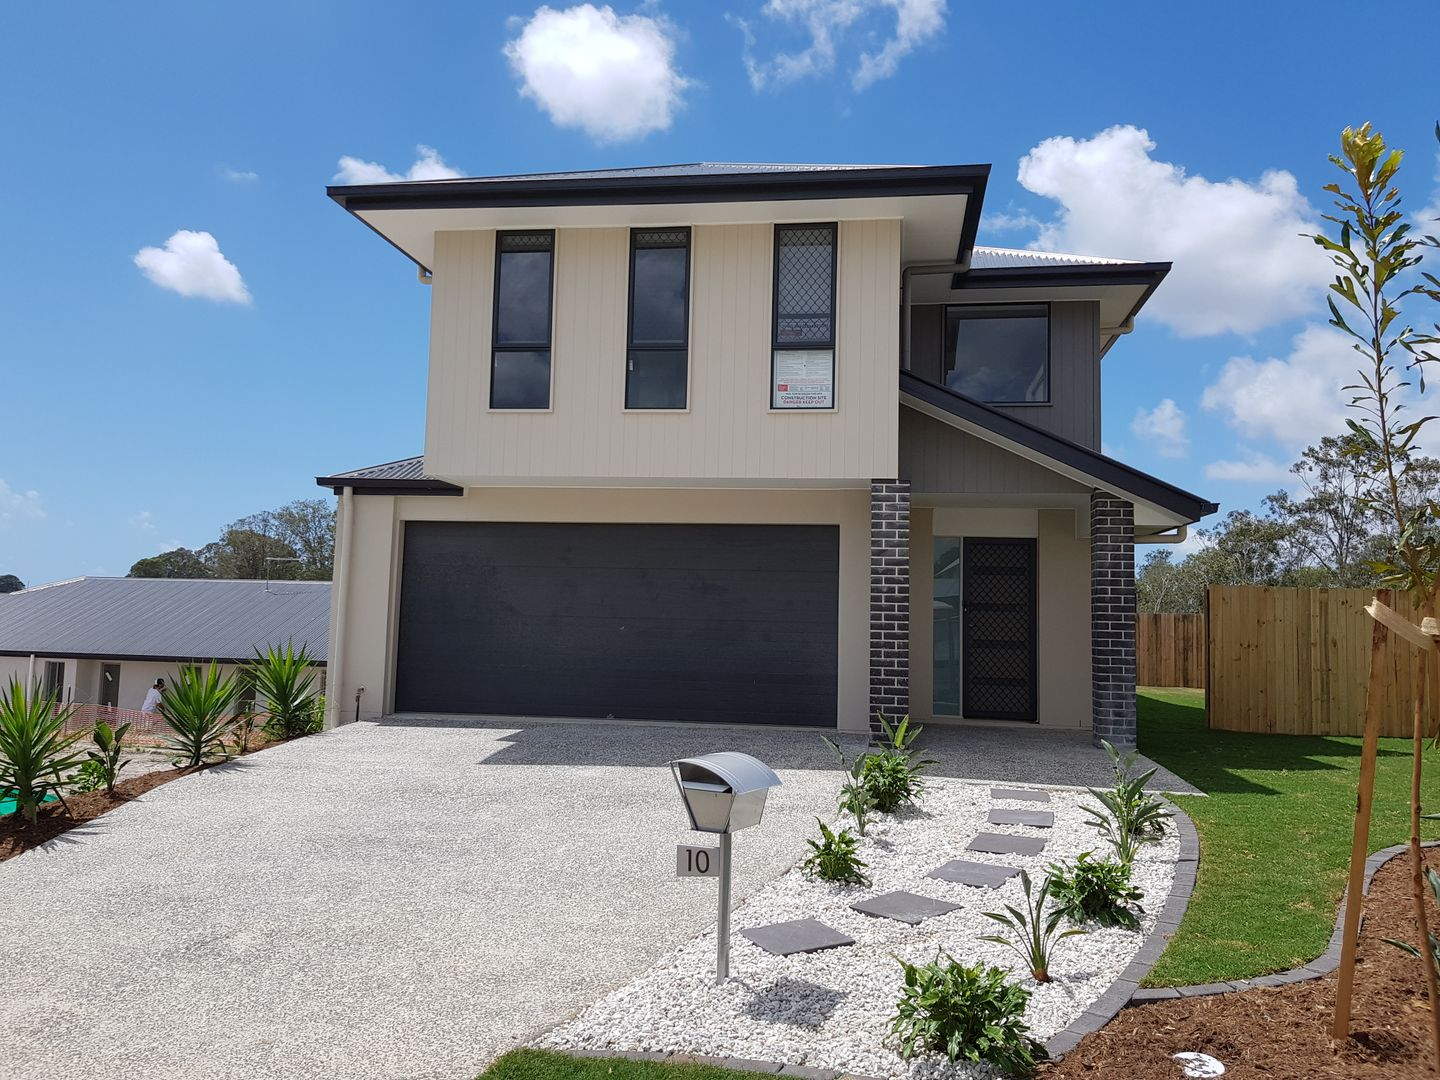 10 Lavinia Way, Coomera QLD 4209, Image 0